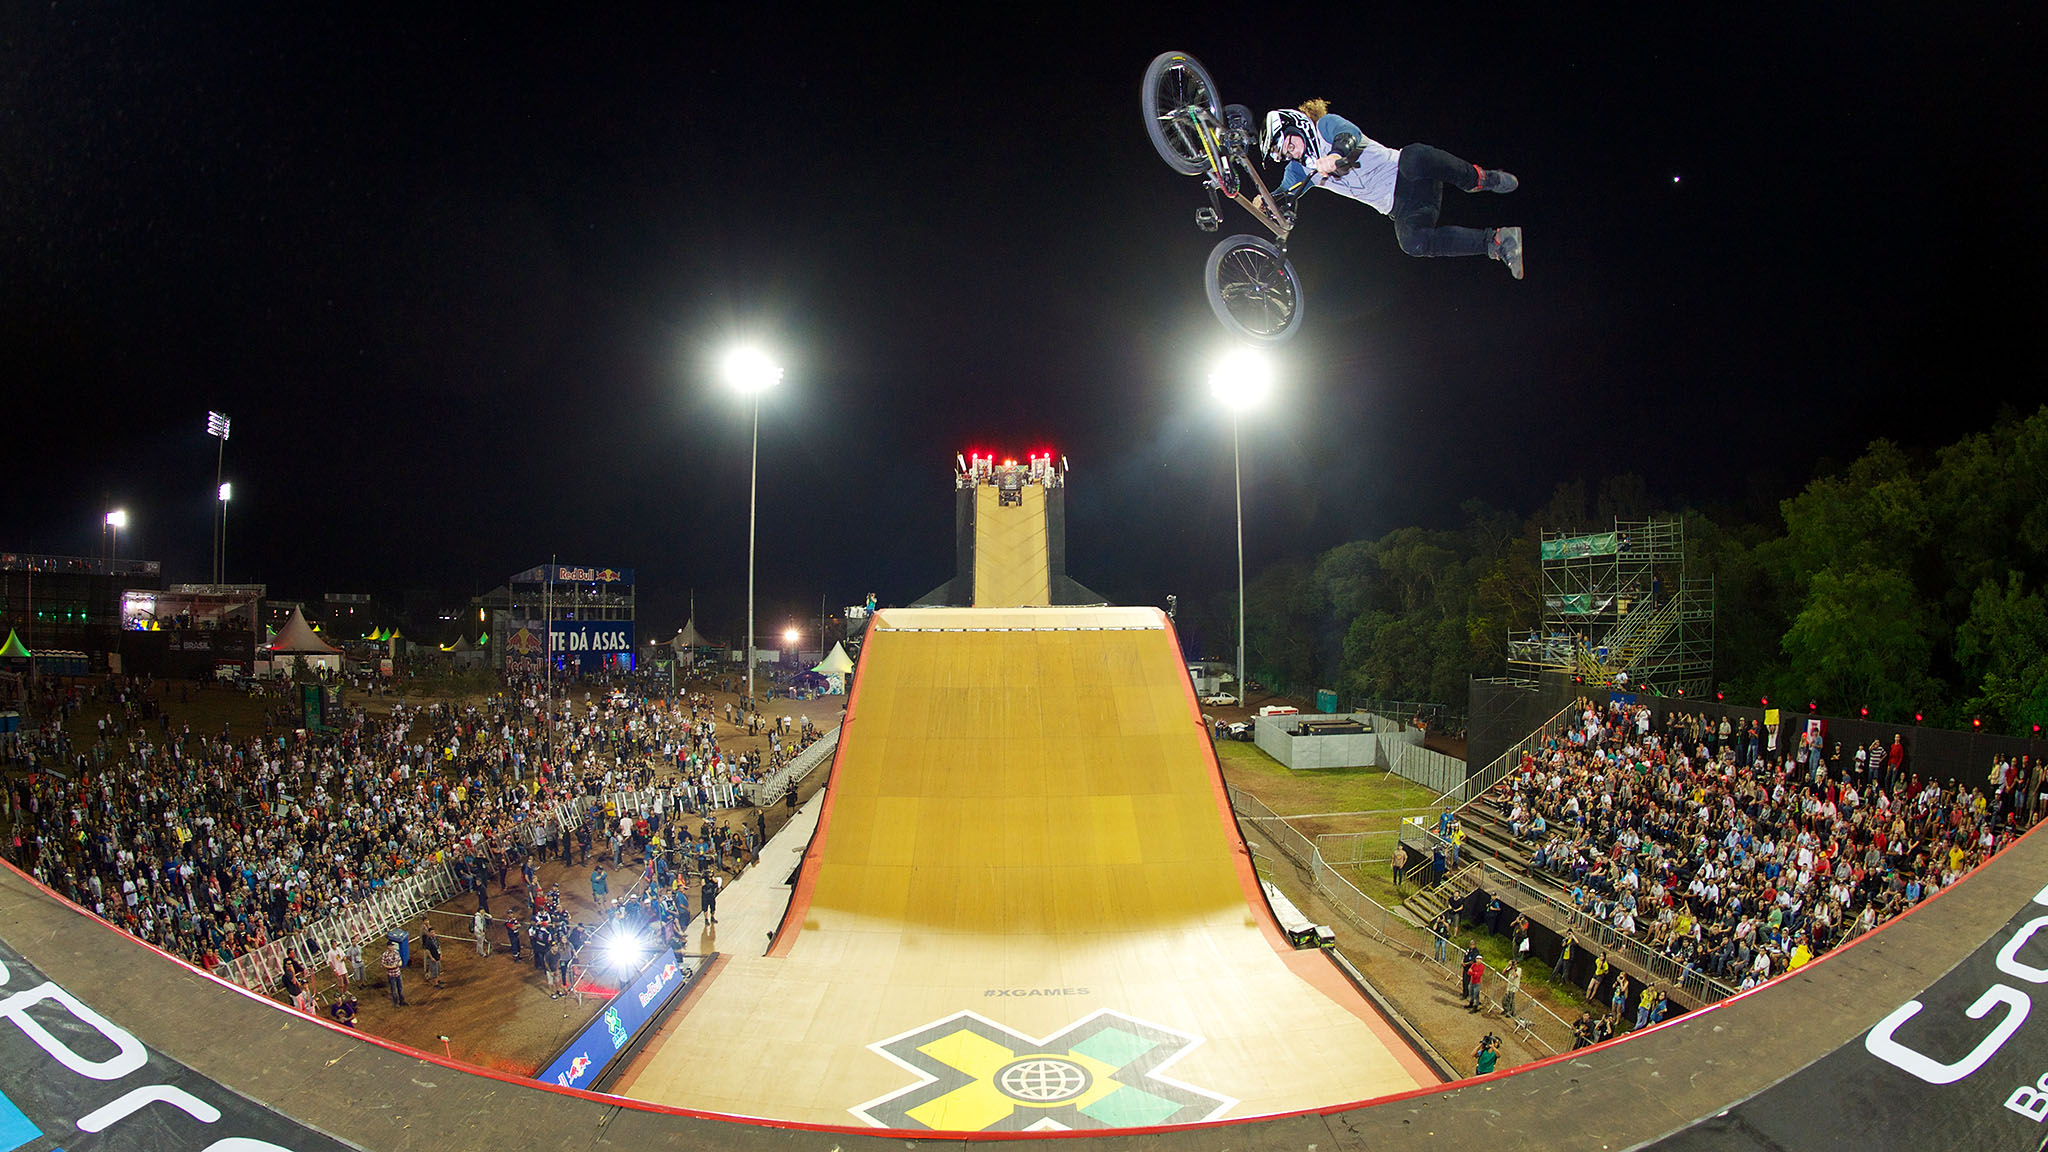 Zack Warden won back-to-back gold medals at X Games Foz do Iguau and Barcelona. Can his bikeflip backflip tailwhip combo bring him the trifecta in BMX Big Air Friday?